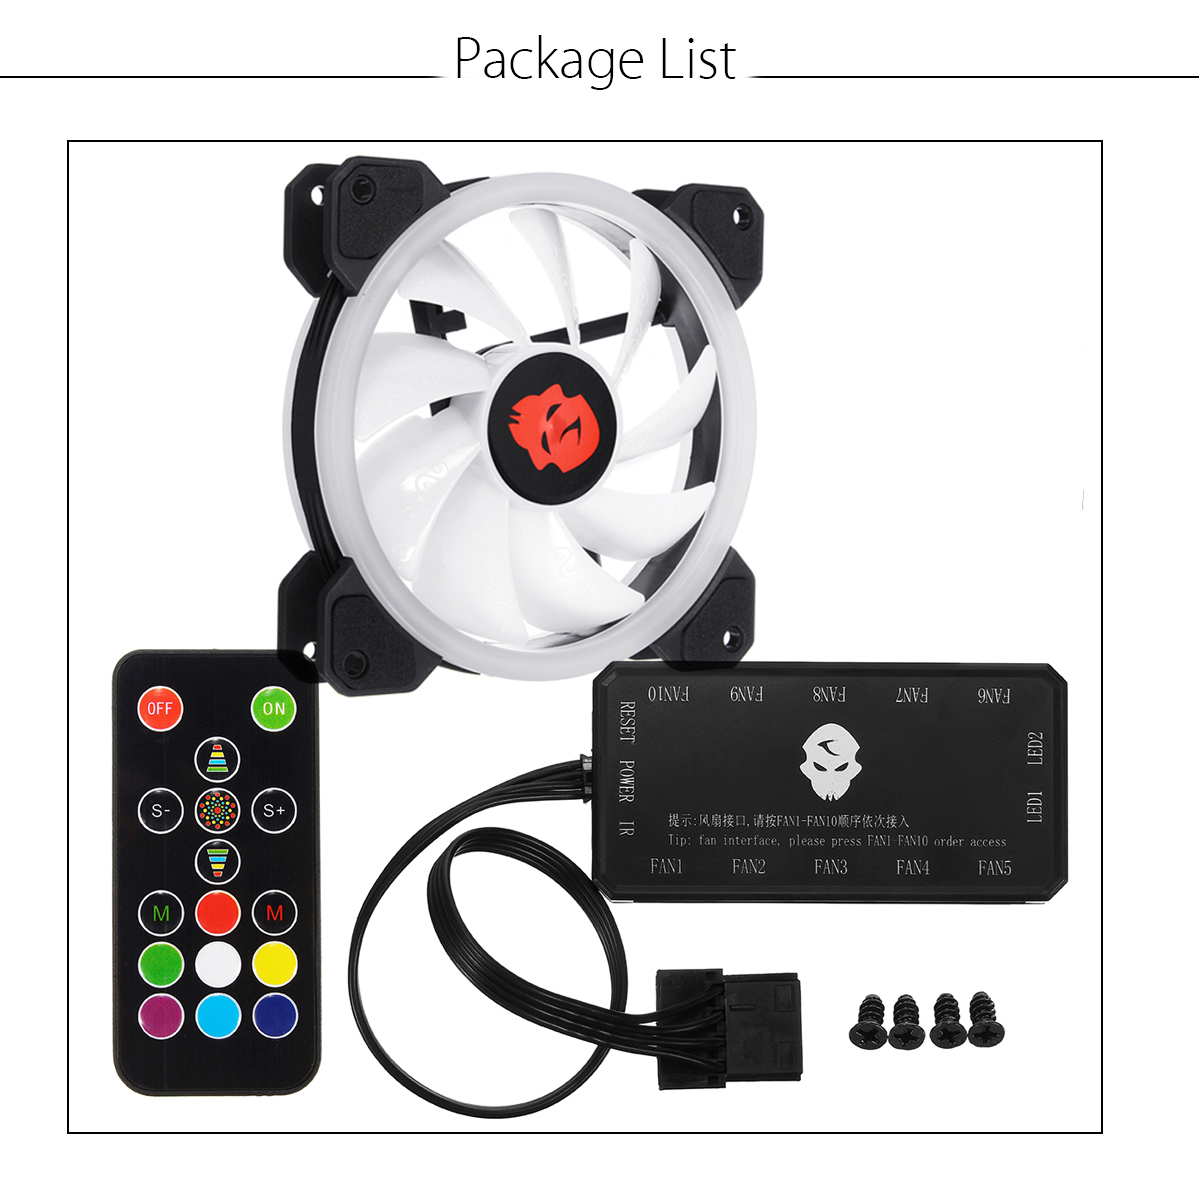 Coolmoon 1PCS 120mm Adjustable RGB LED Light Computer Case PC Cooling Fan with IR Remote Controller